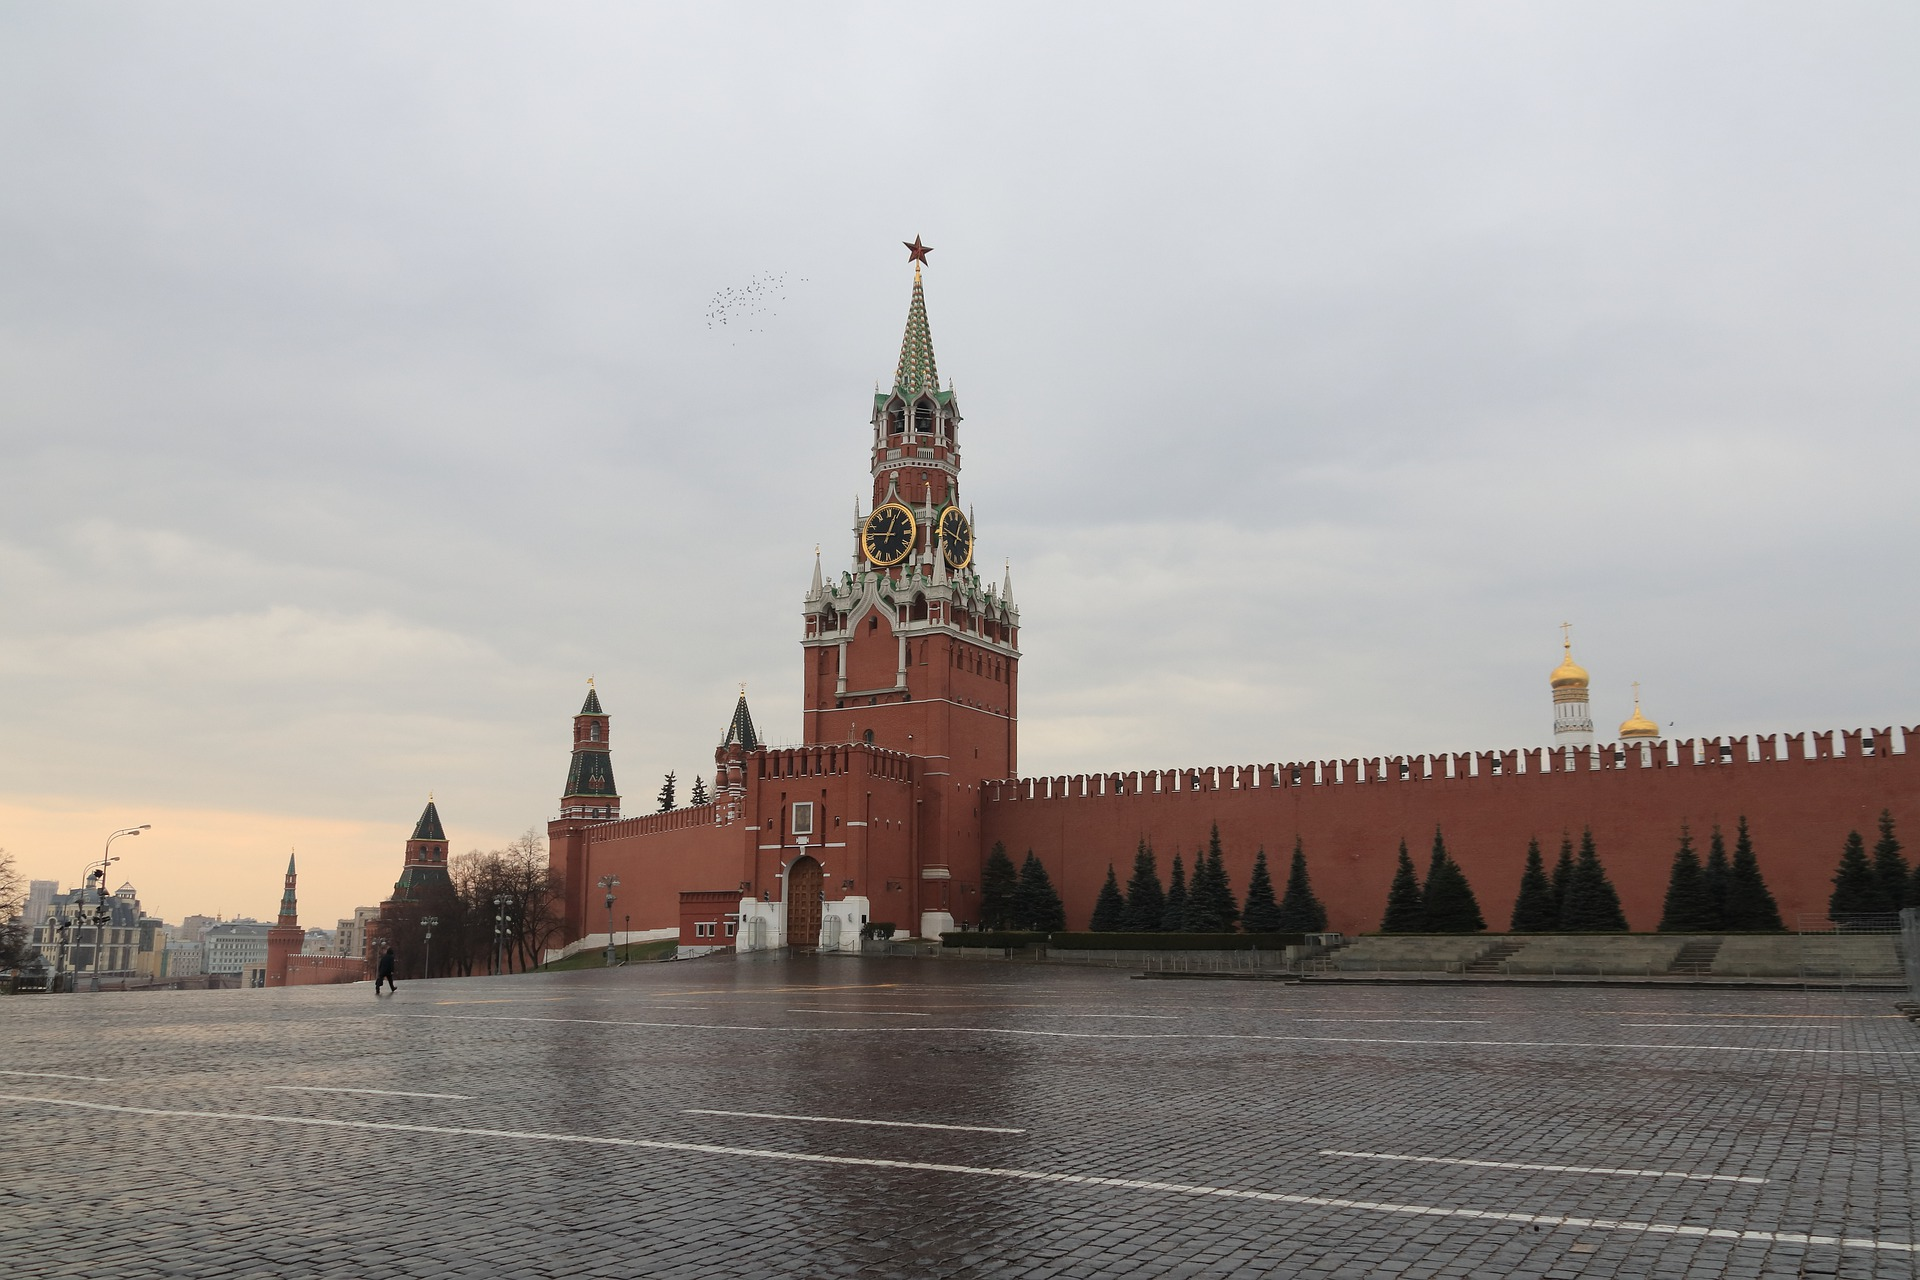 Russia lifting restrictions, but COVID-19 hasn't gone away